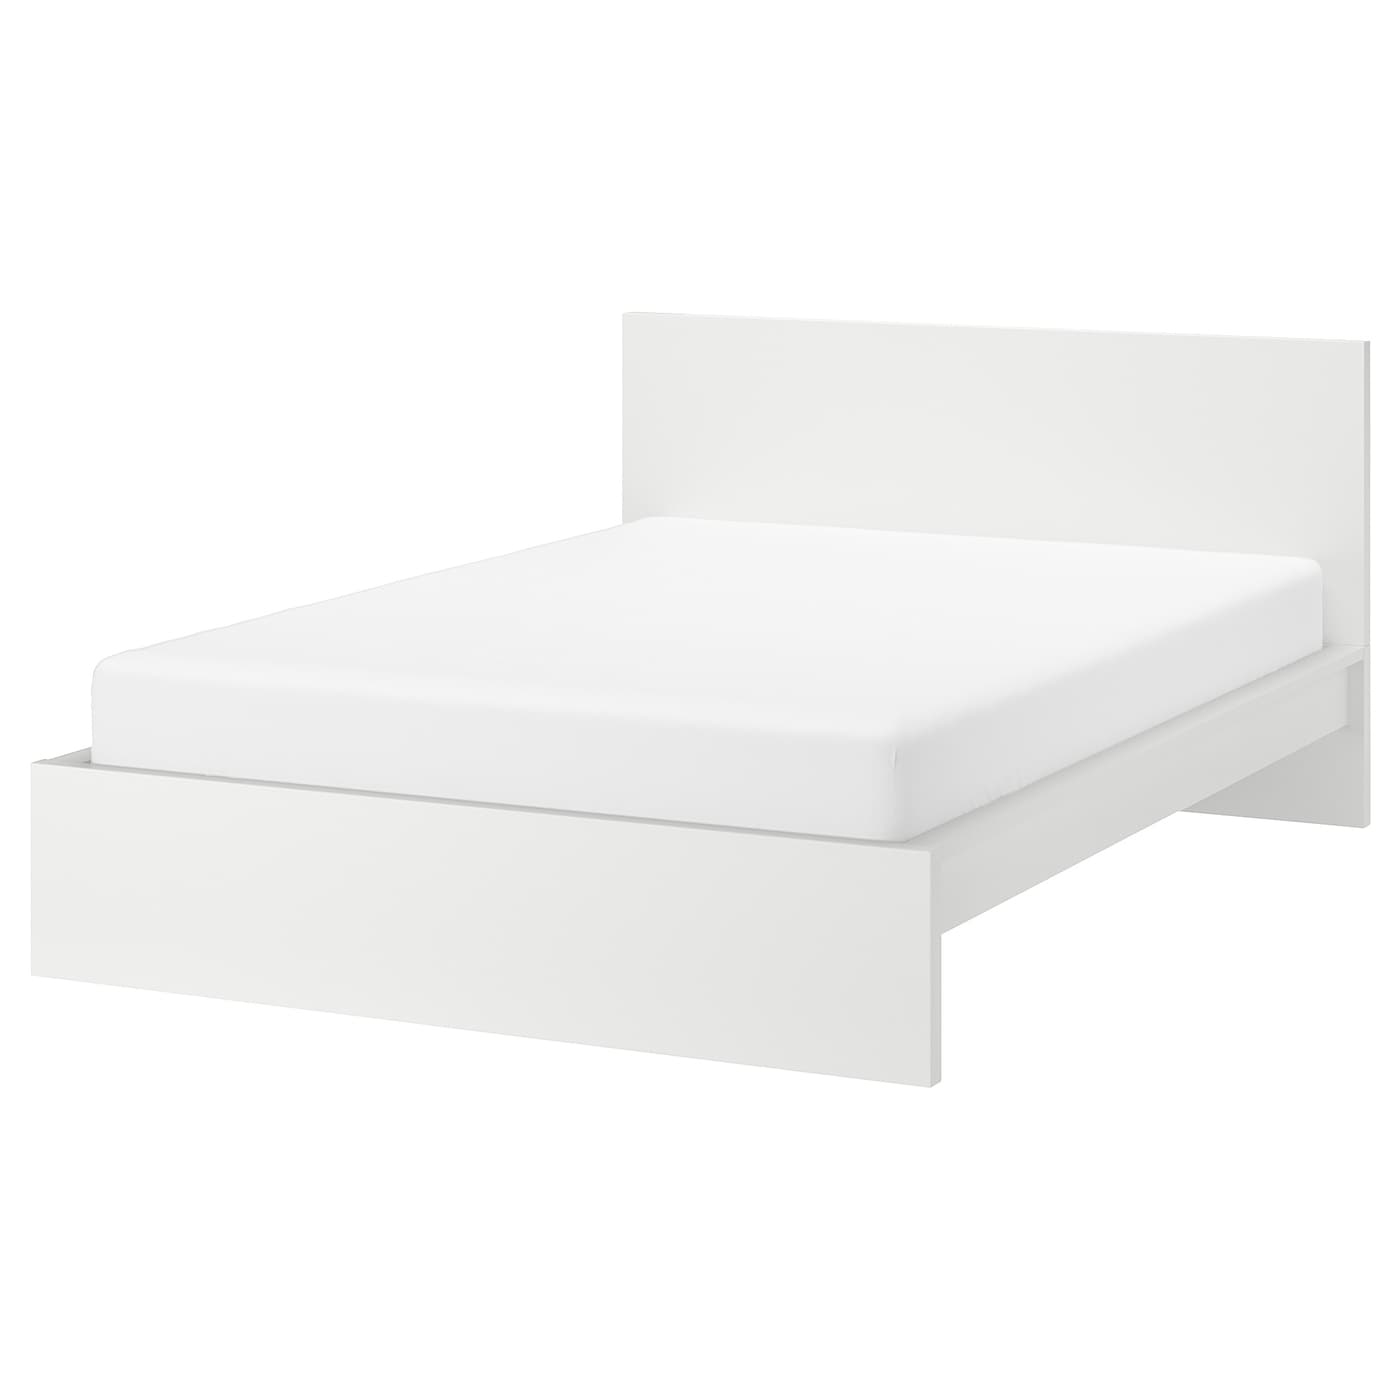 Picture of: Malm Bed Frame High White Queen Ikea